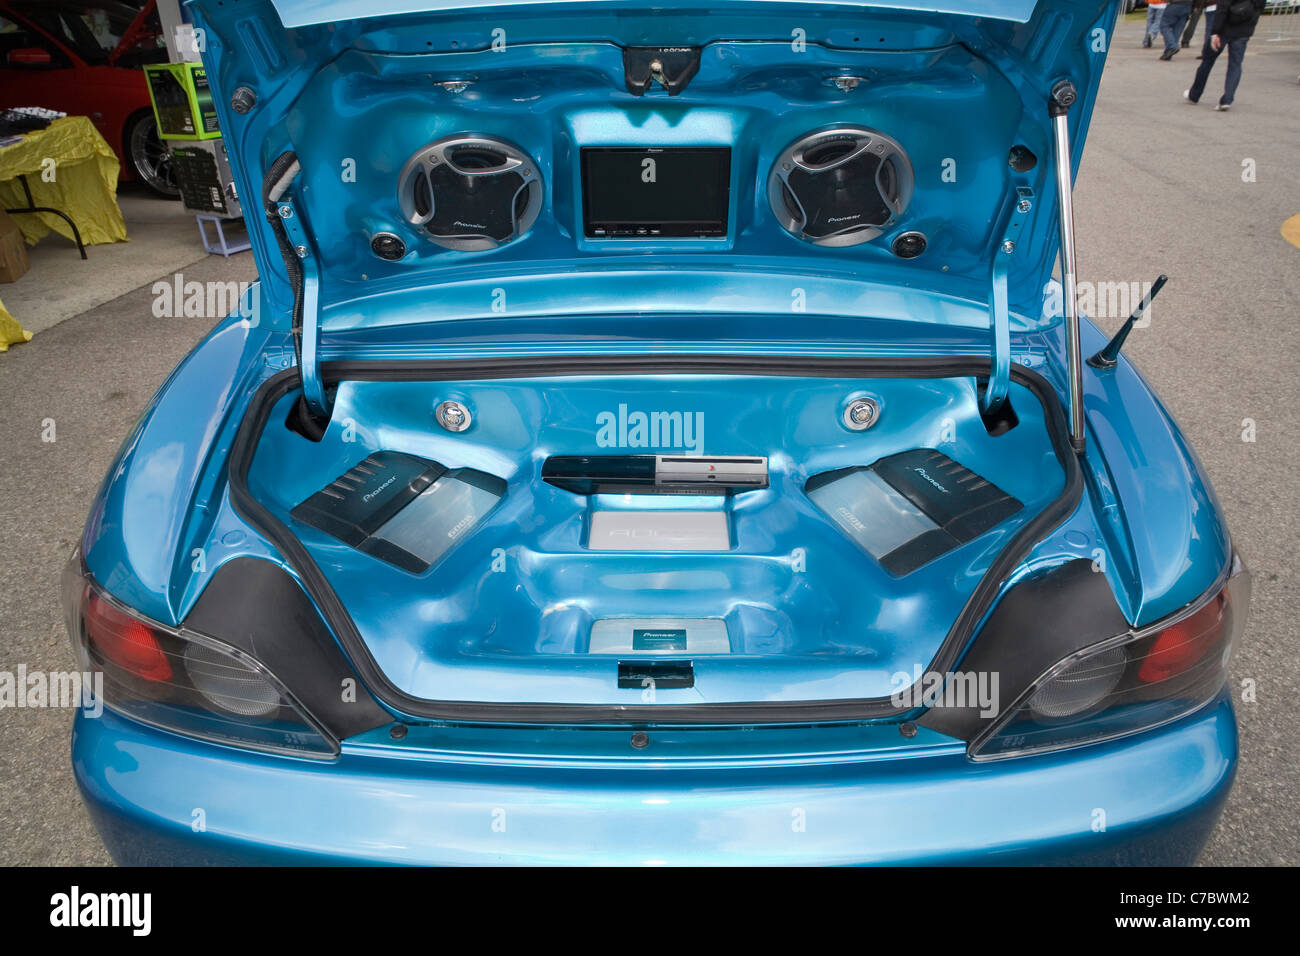 Car Stereo Amplifiers And Sound System In The Boot Of A Modified Boy Stock Photo Alamy